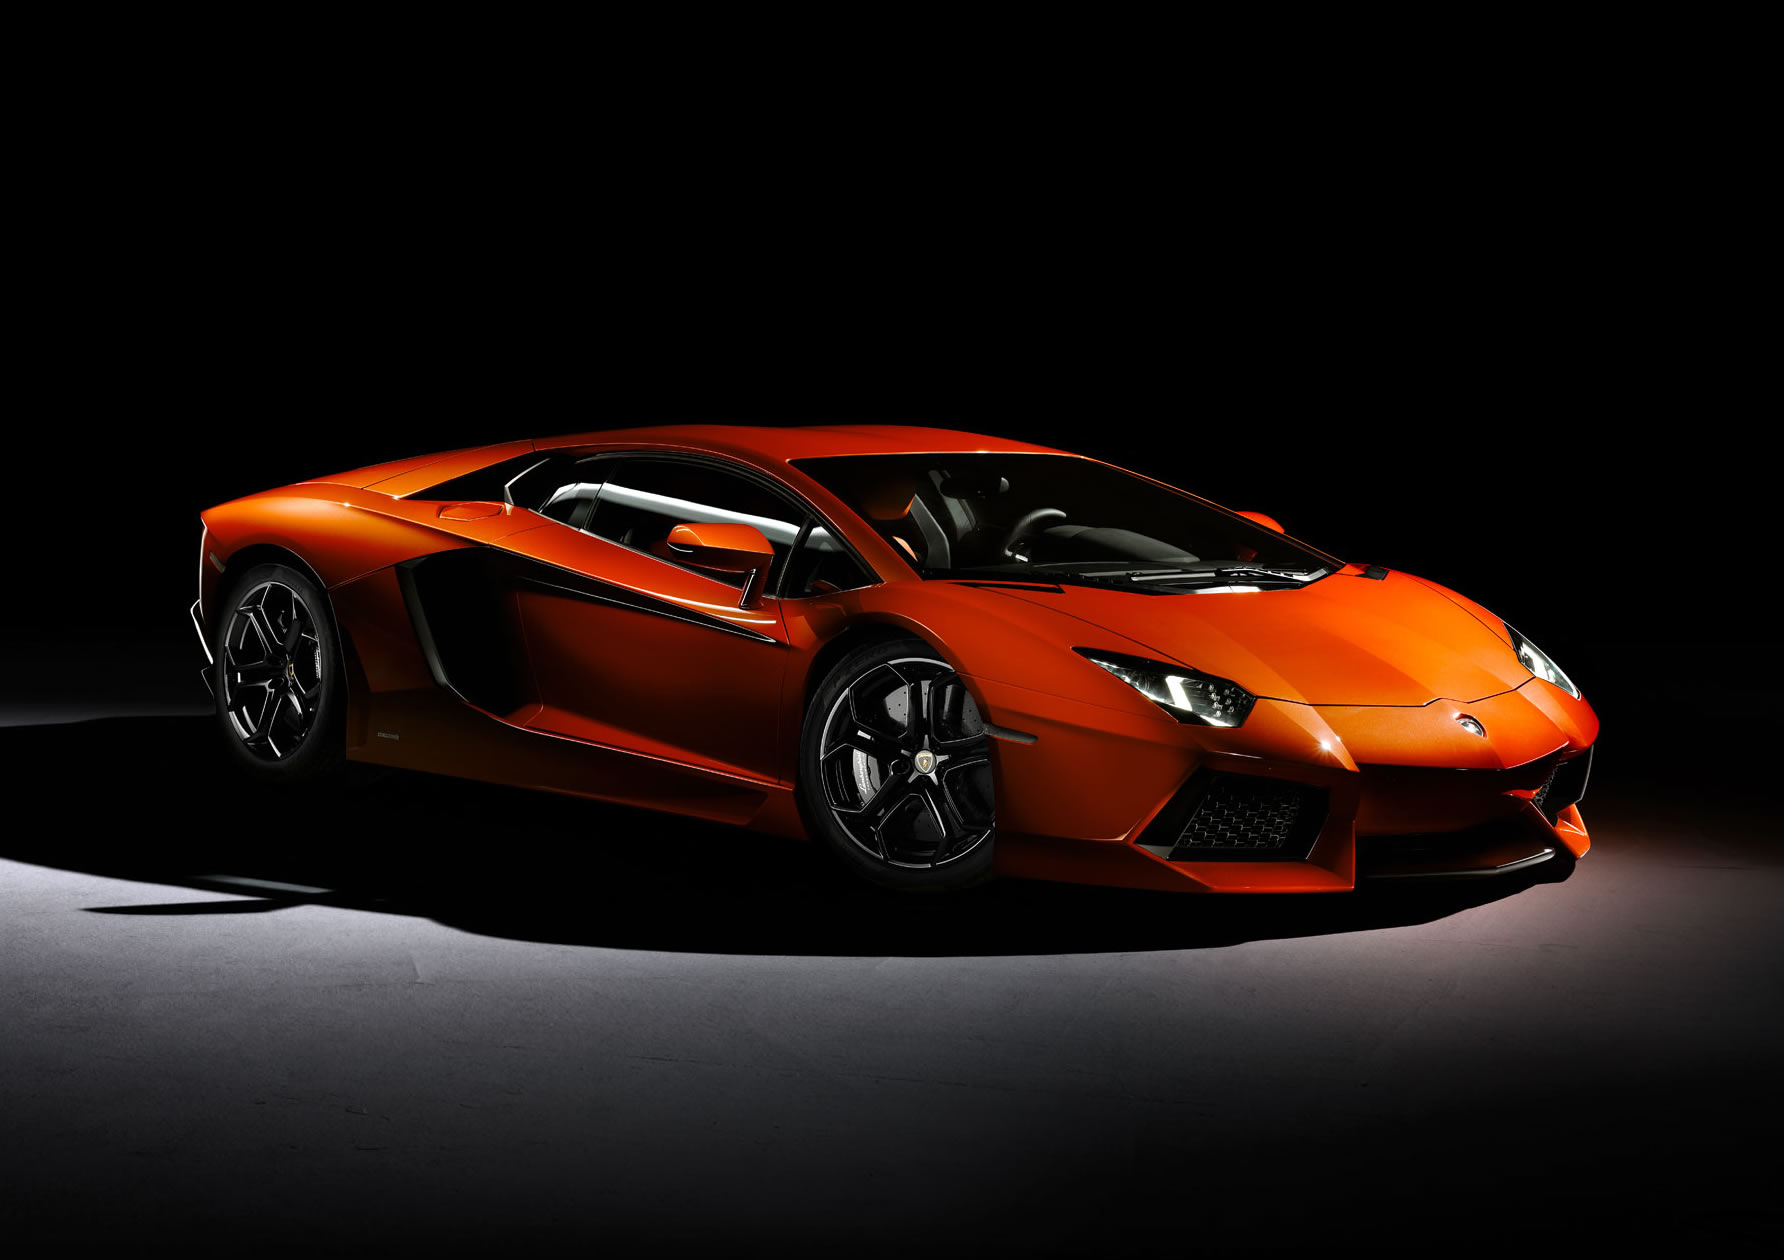 2014 Lamborghini Aventador Price Car Interior Design